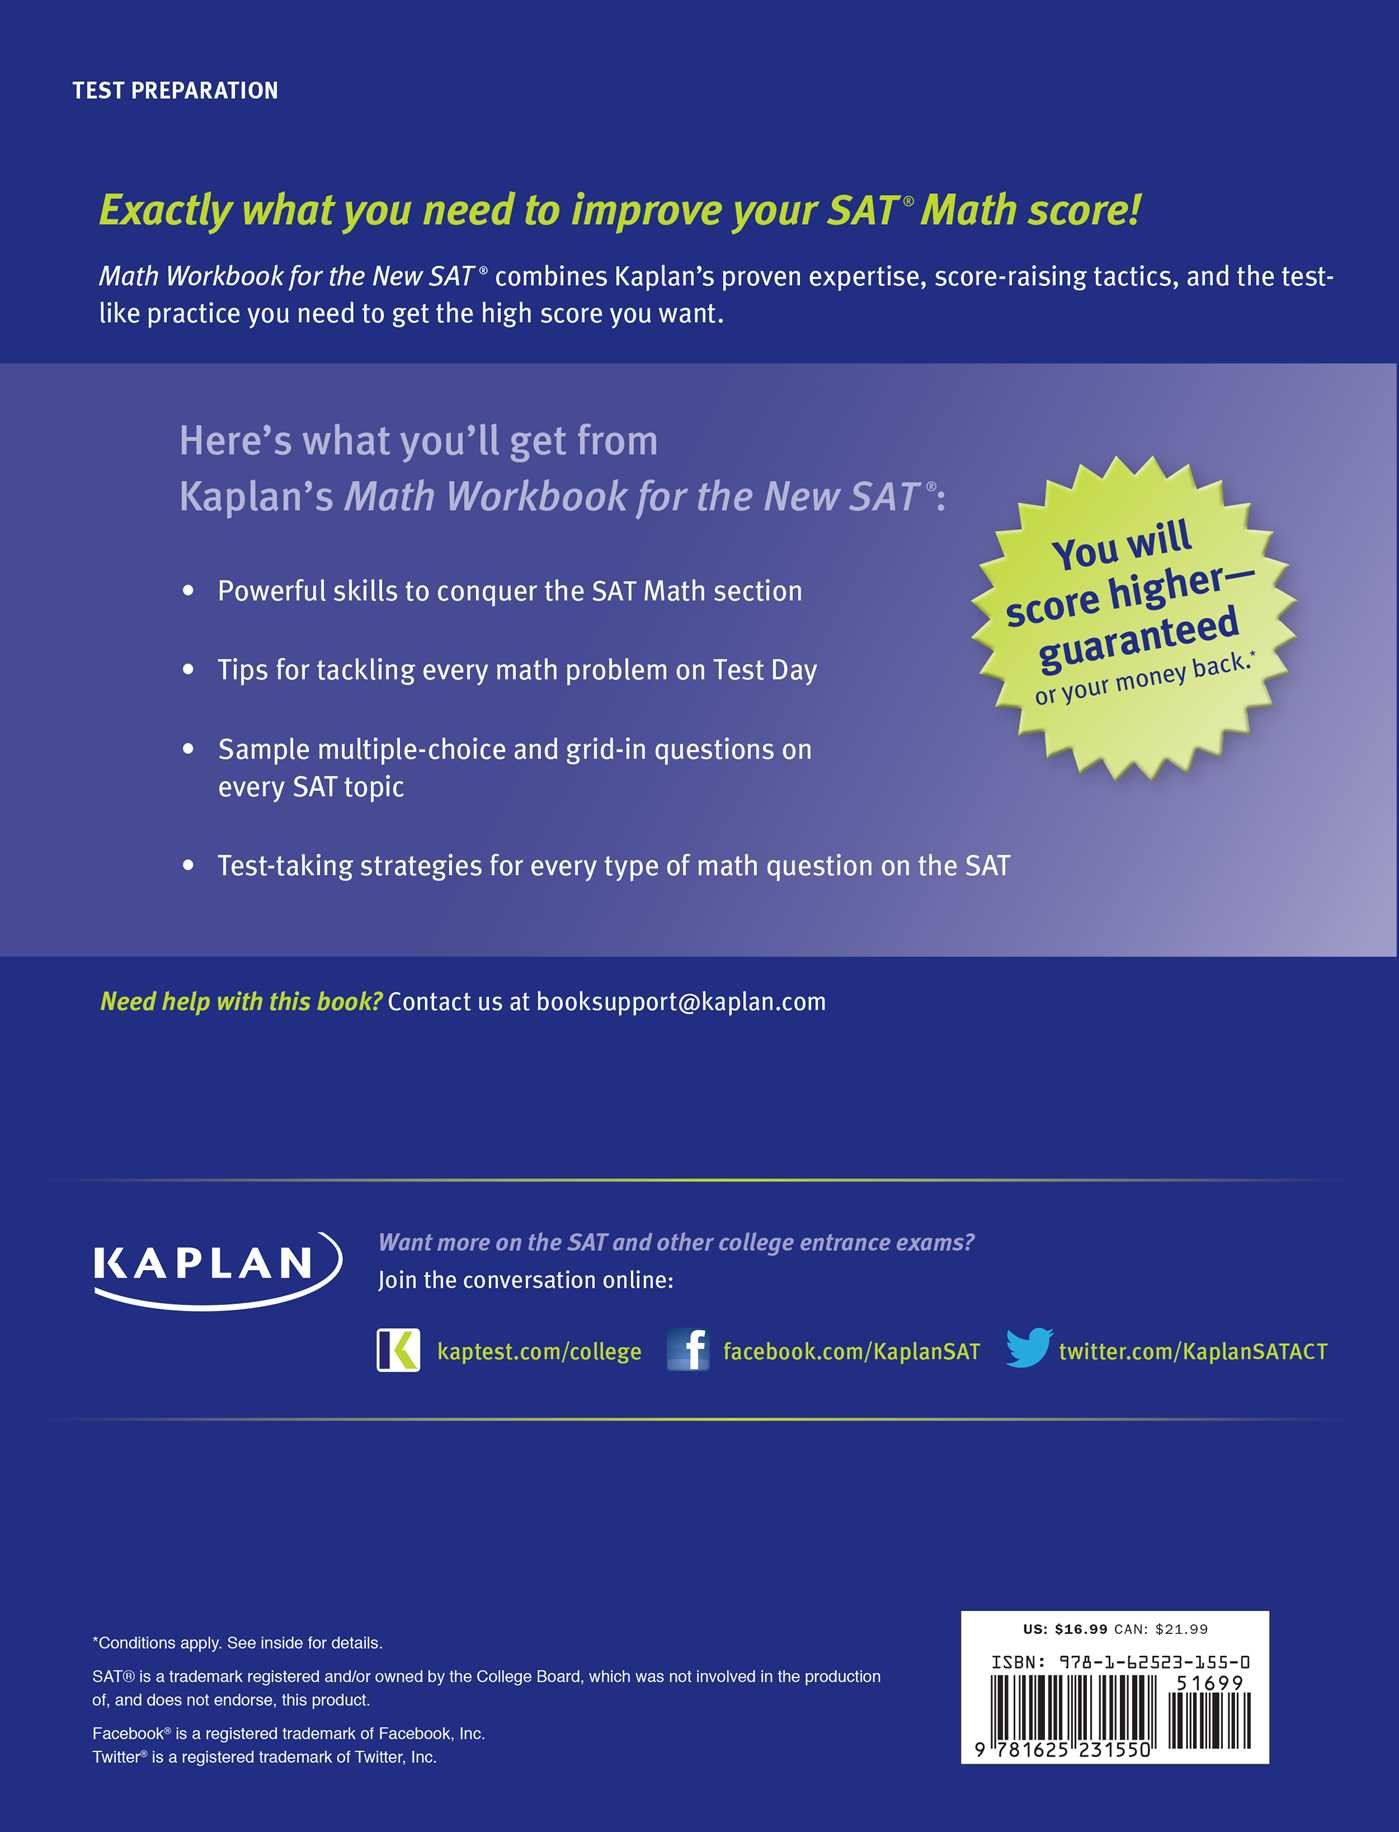 kaplan math workbook for the new sat kaplan test prep kaplan kaplan math workbook for the new sat kaplan test prep kaplan test prep 9781625231550 com books